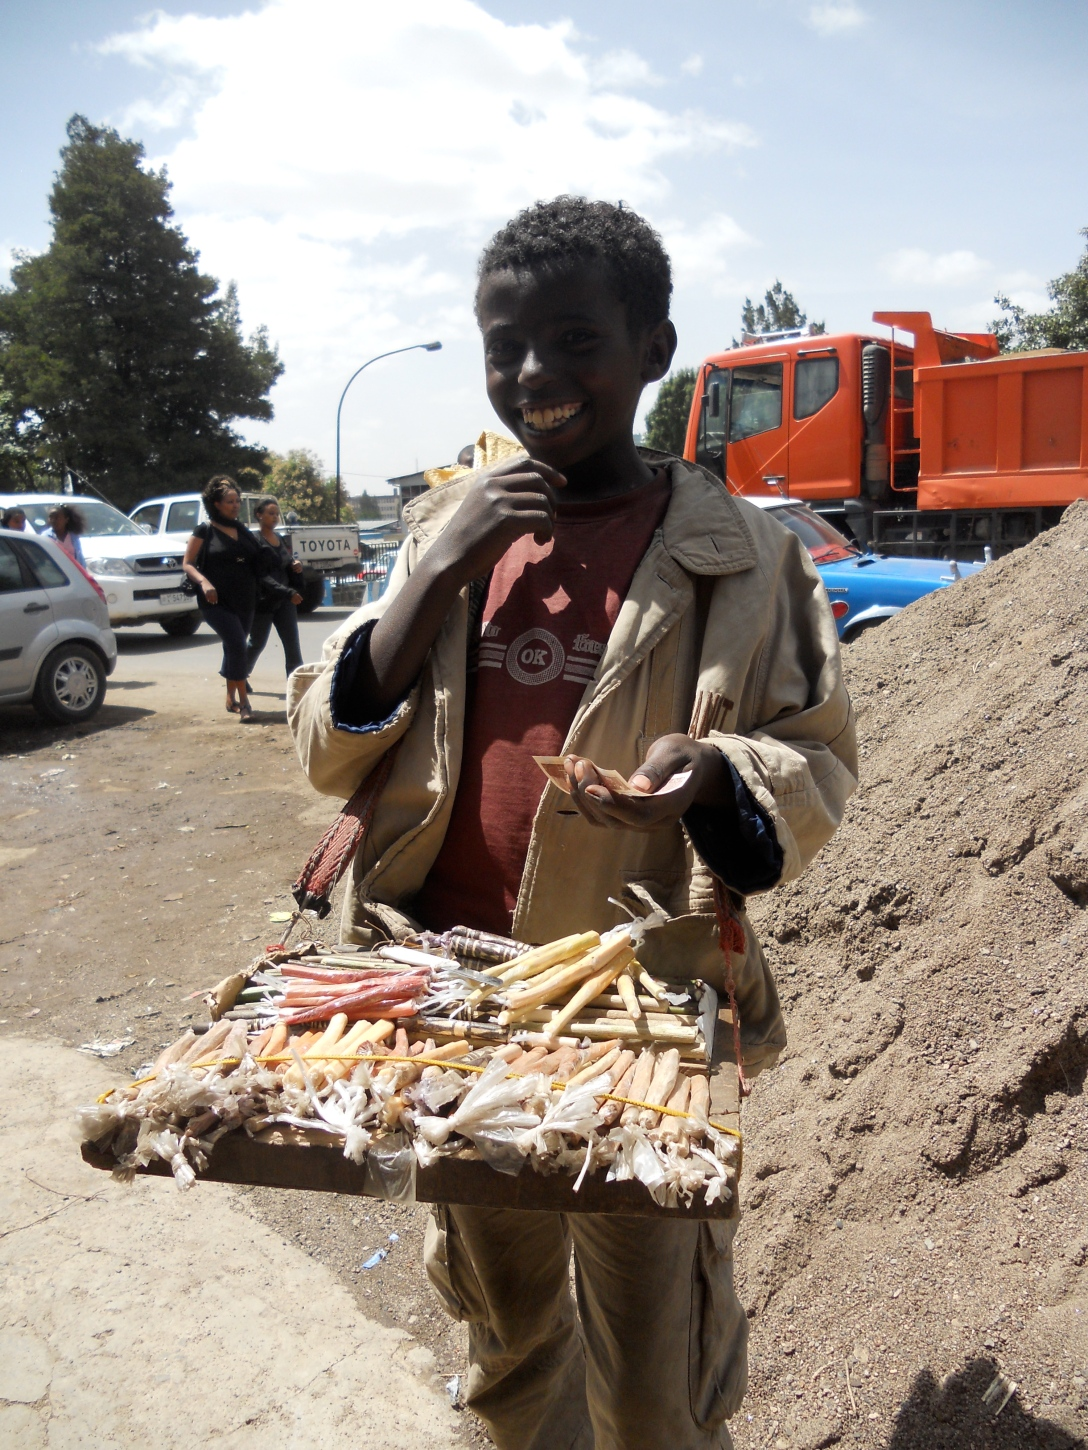 A young Ethiopian toothbrush salesman who bears an uncanny resemblance to 'Little Ze,' a character in the film City of God